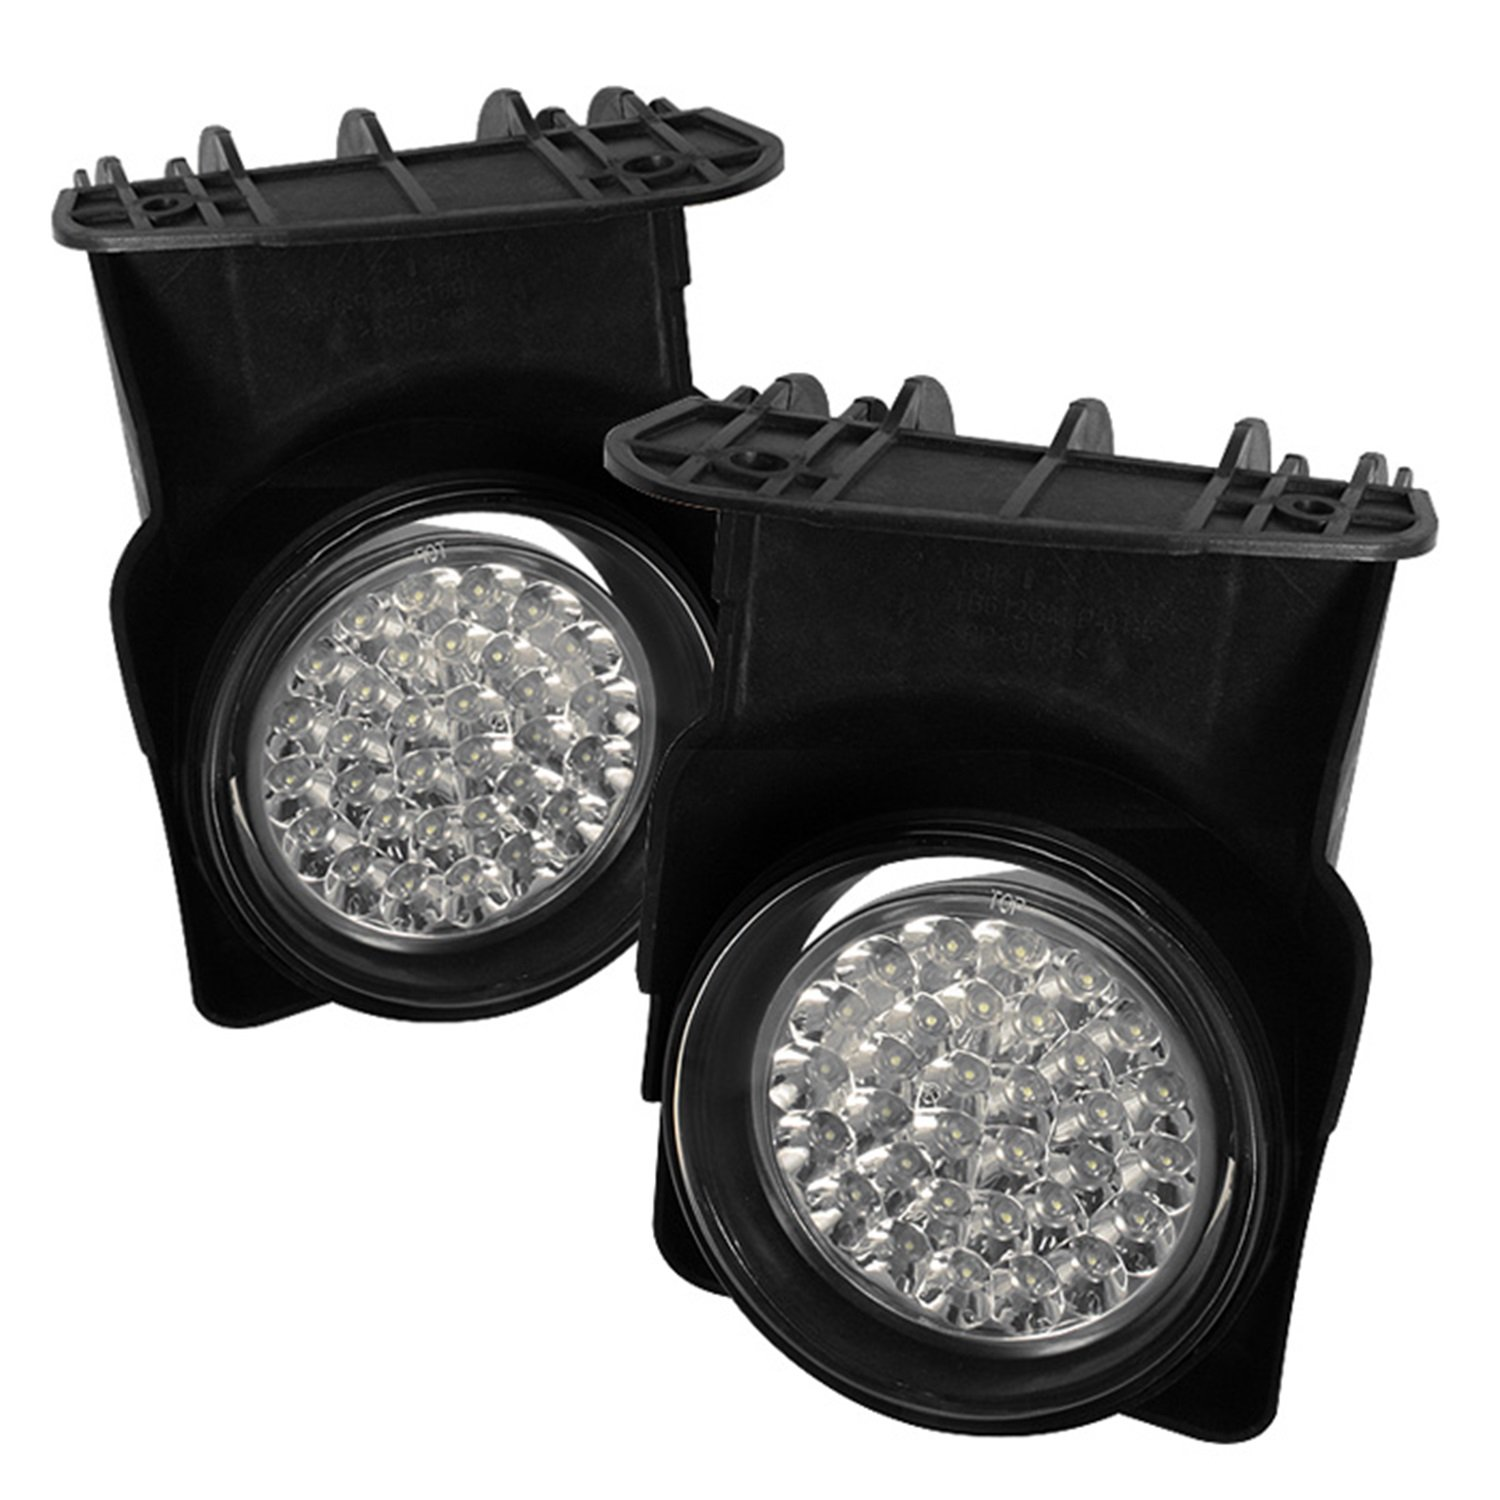 71EH3a6mQFL._SL1500_ amazon com spyder auto fl led gs03 c gmc clear led fog light  at crackthecode.co